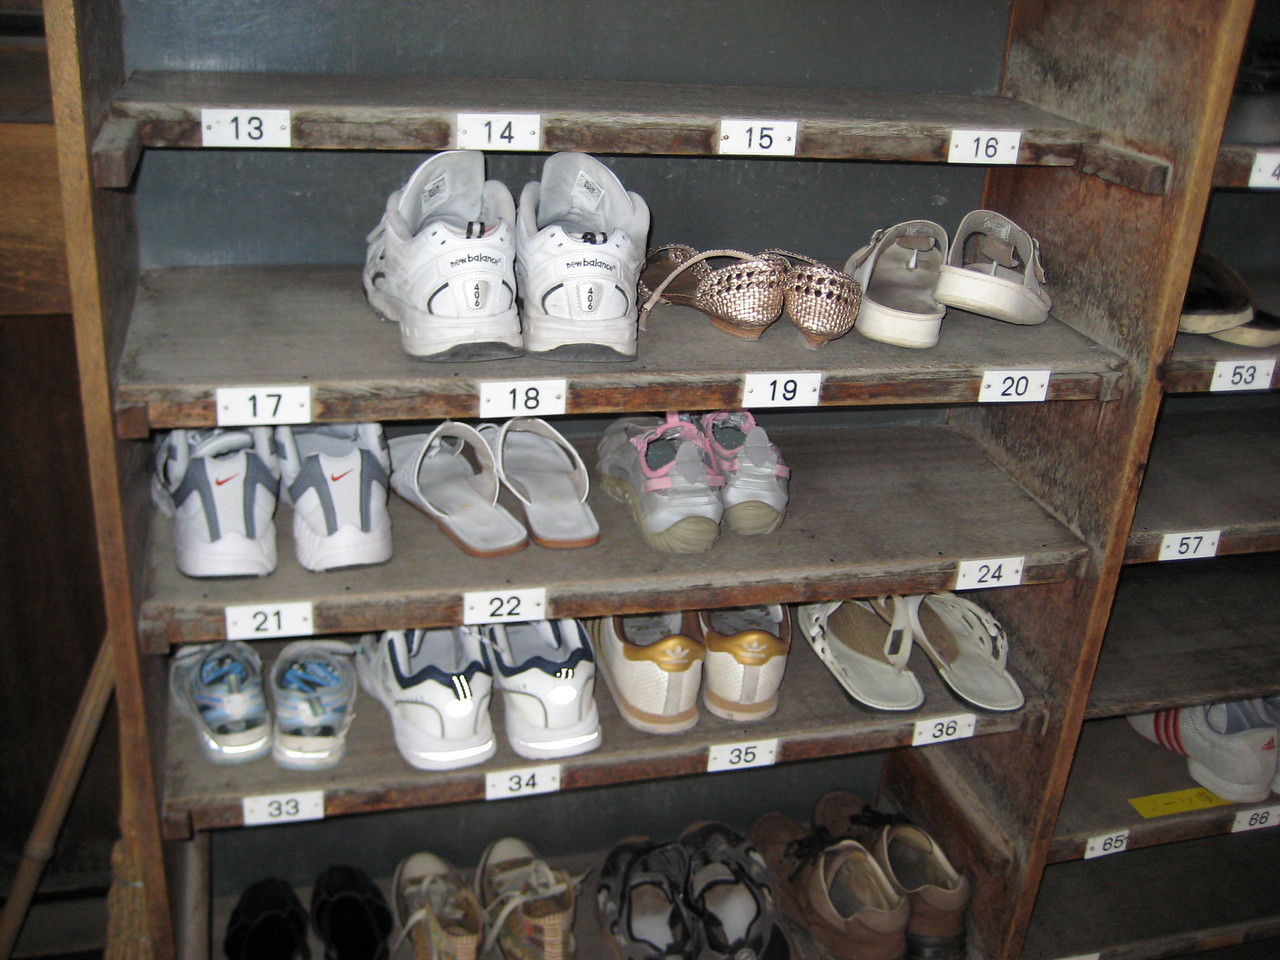 The getabako or shoe rack where we will keep our shoes. Josh's tennis shoes are in slot 18 and mine will join his shortly in slot 17.